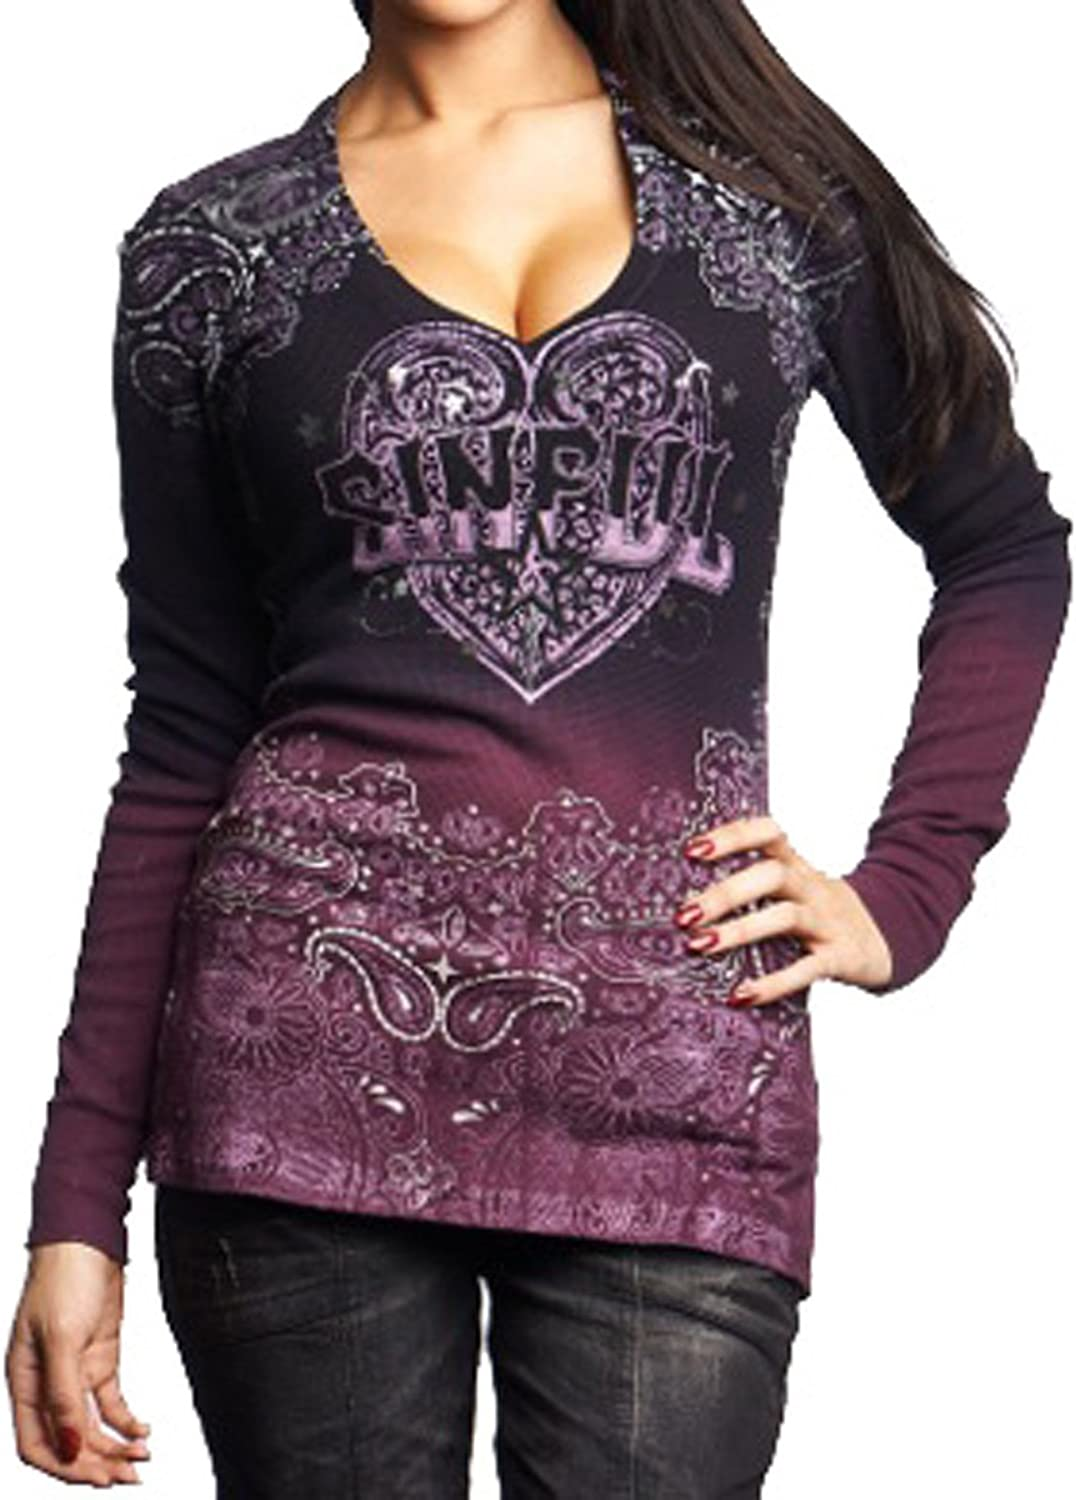 Affliction Sinful Women Tee Cowgirl Gun & pink L s Vneck in Pink Brush Wash